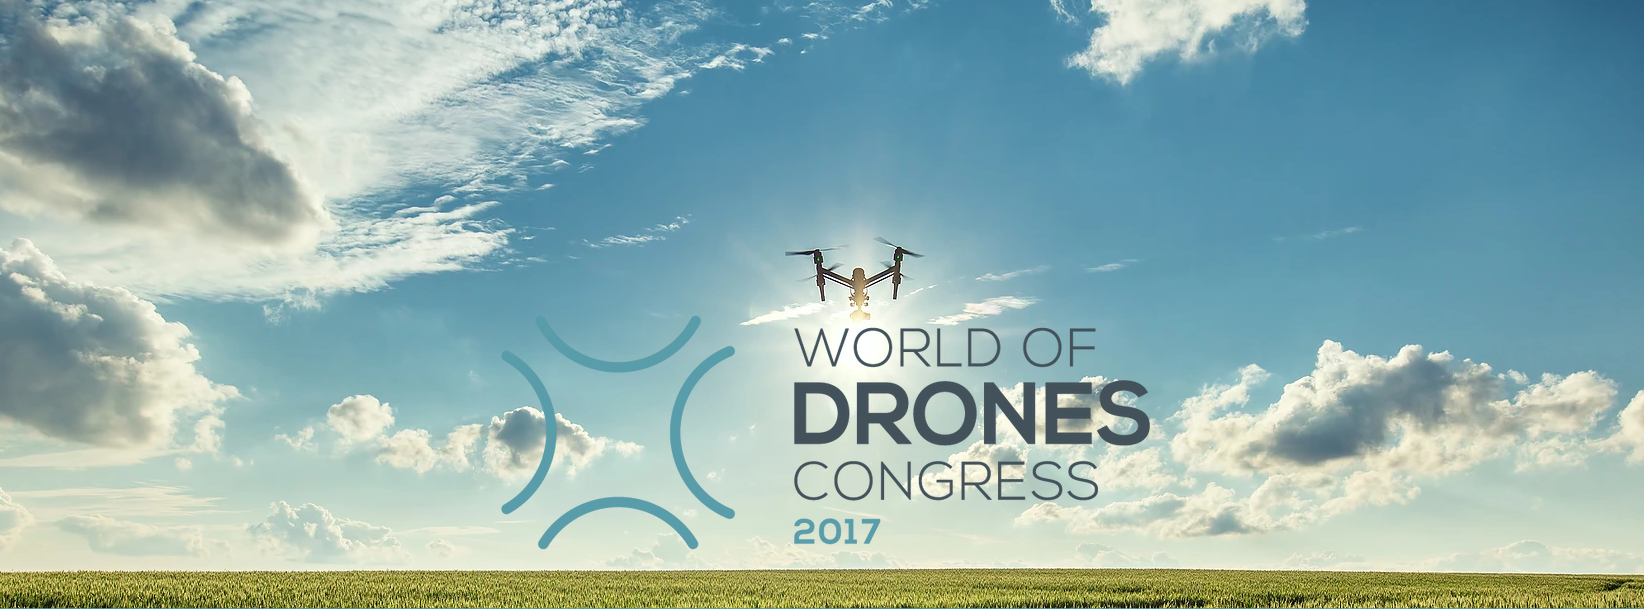 Drone Girl to speak at World of Drones Congress in Brisbane, Australia